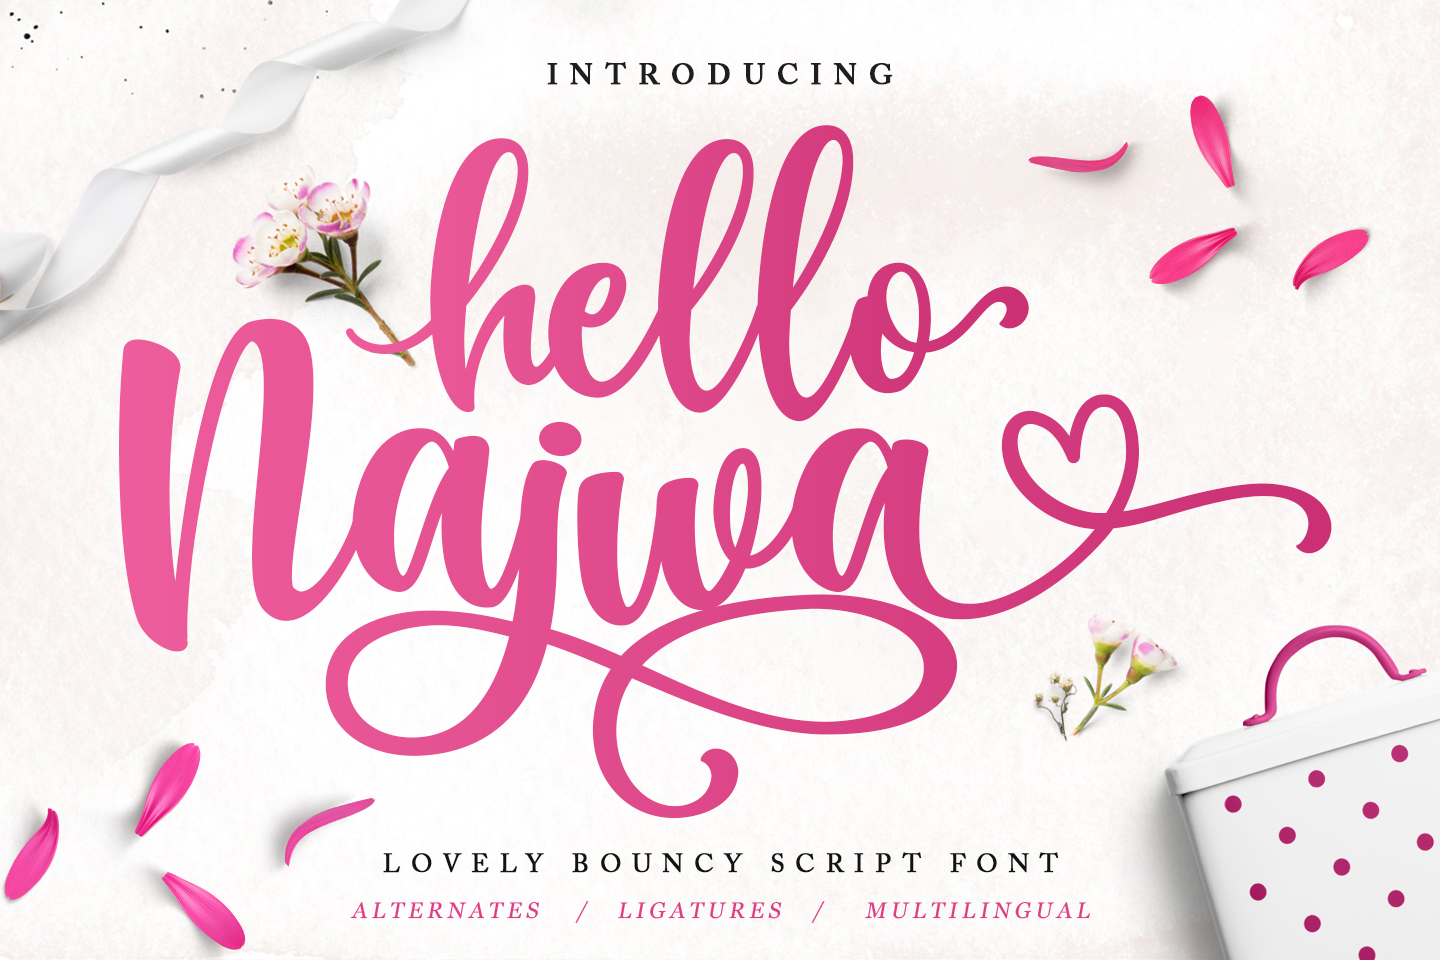 Hello Najwa - Lovely Script Font example image 1